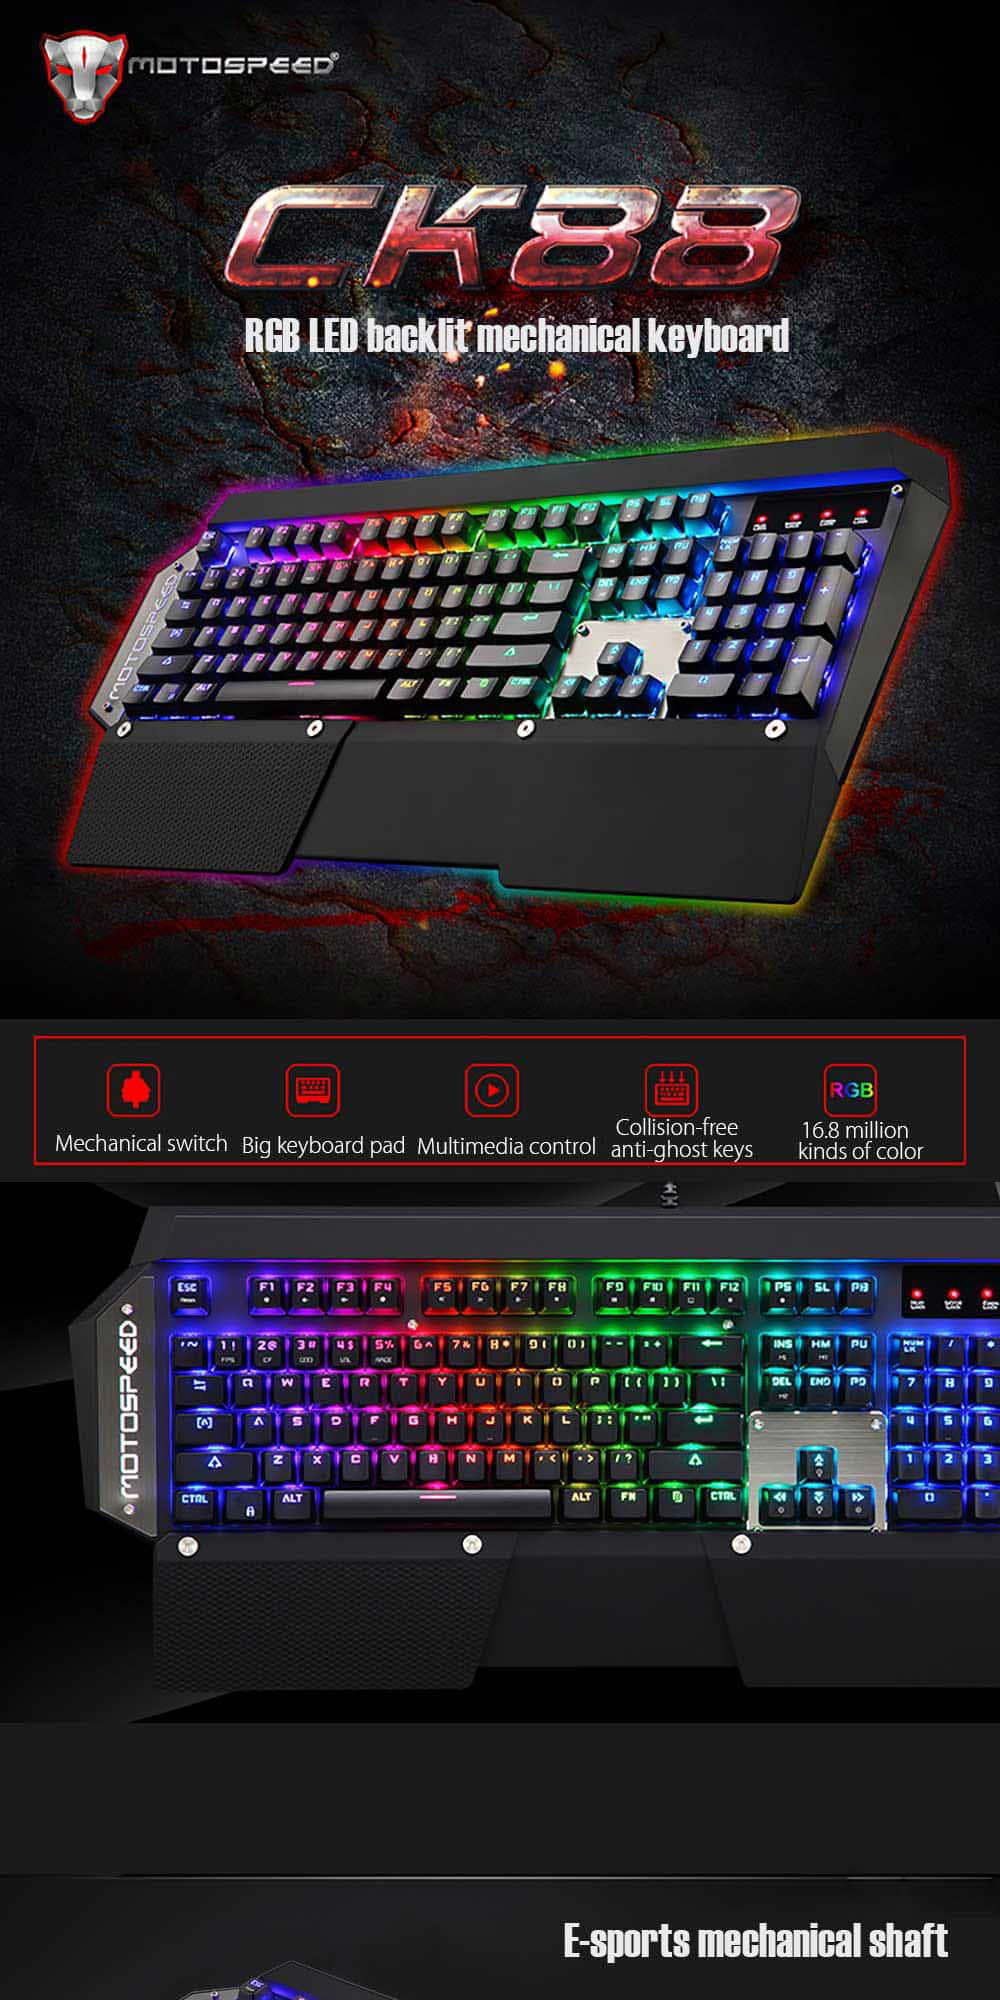 motospeed ck88 mechanical keyboard